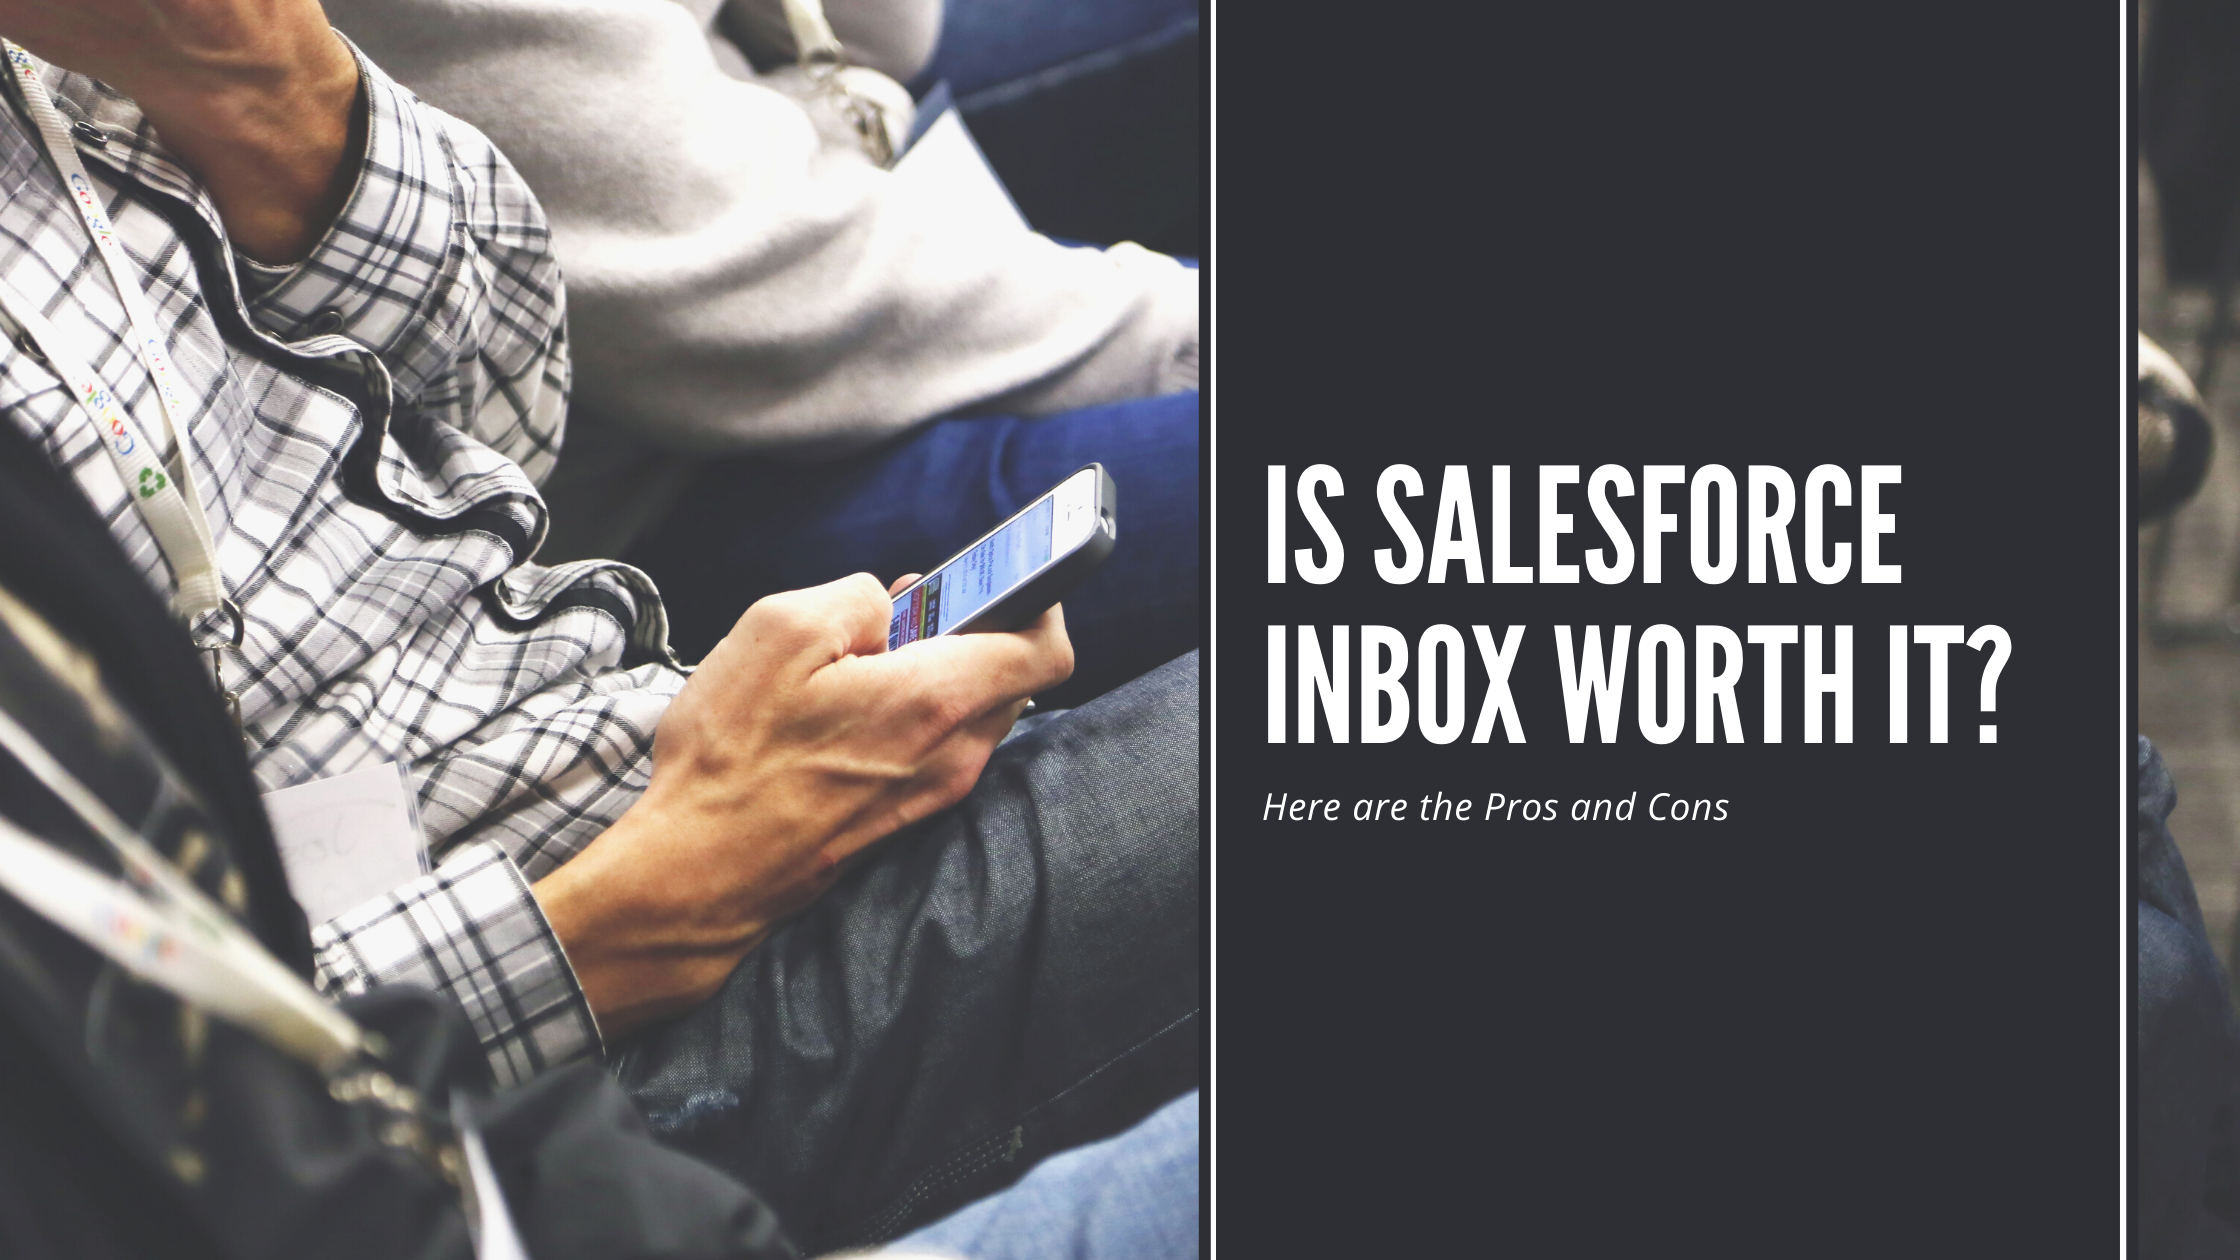 Is Salesforce inbox worth it?